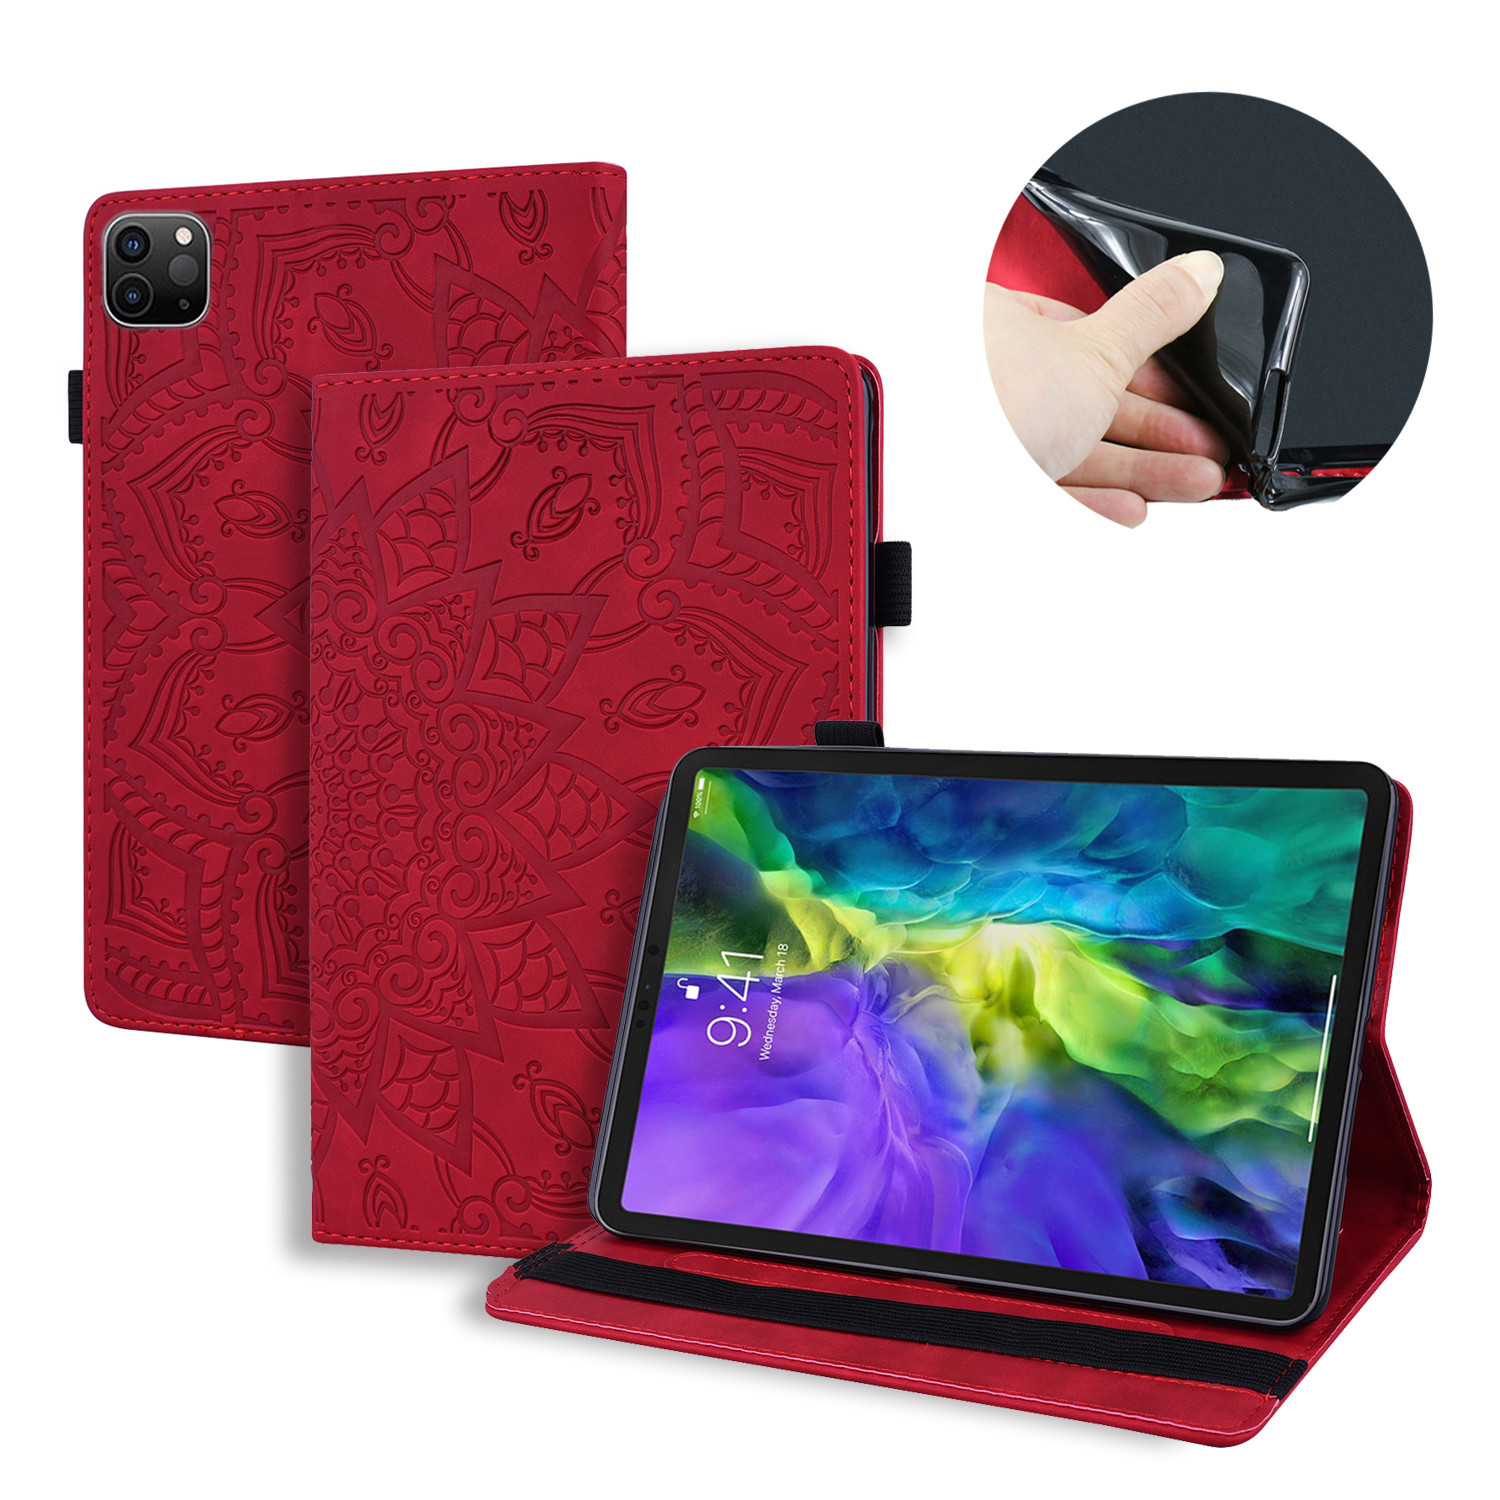 4 Green For iPad Pro 2020 Case 12 9 3D Embossed Flower 4th Generation Folding Leather Cover for